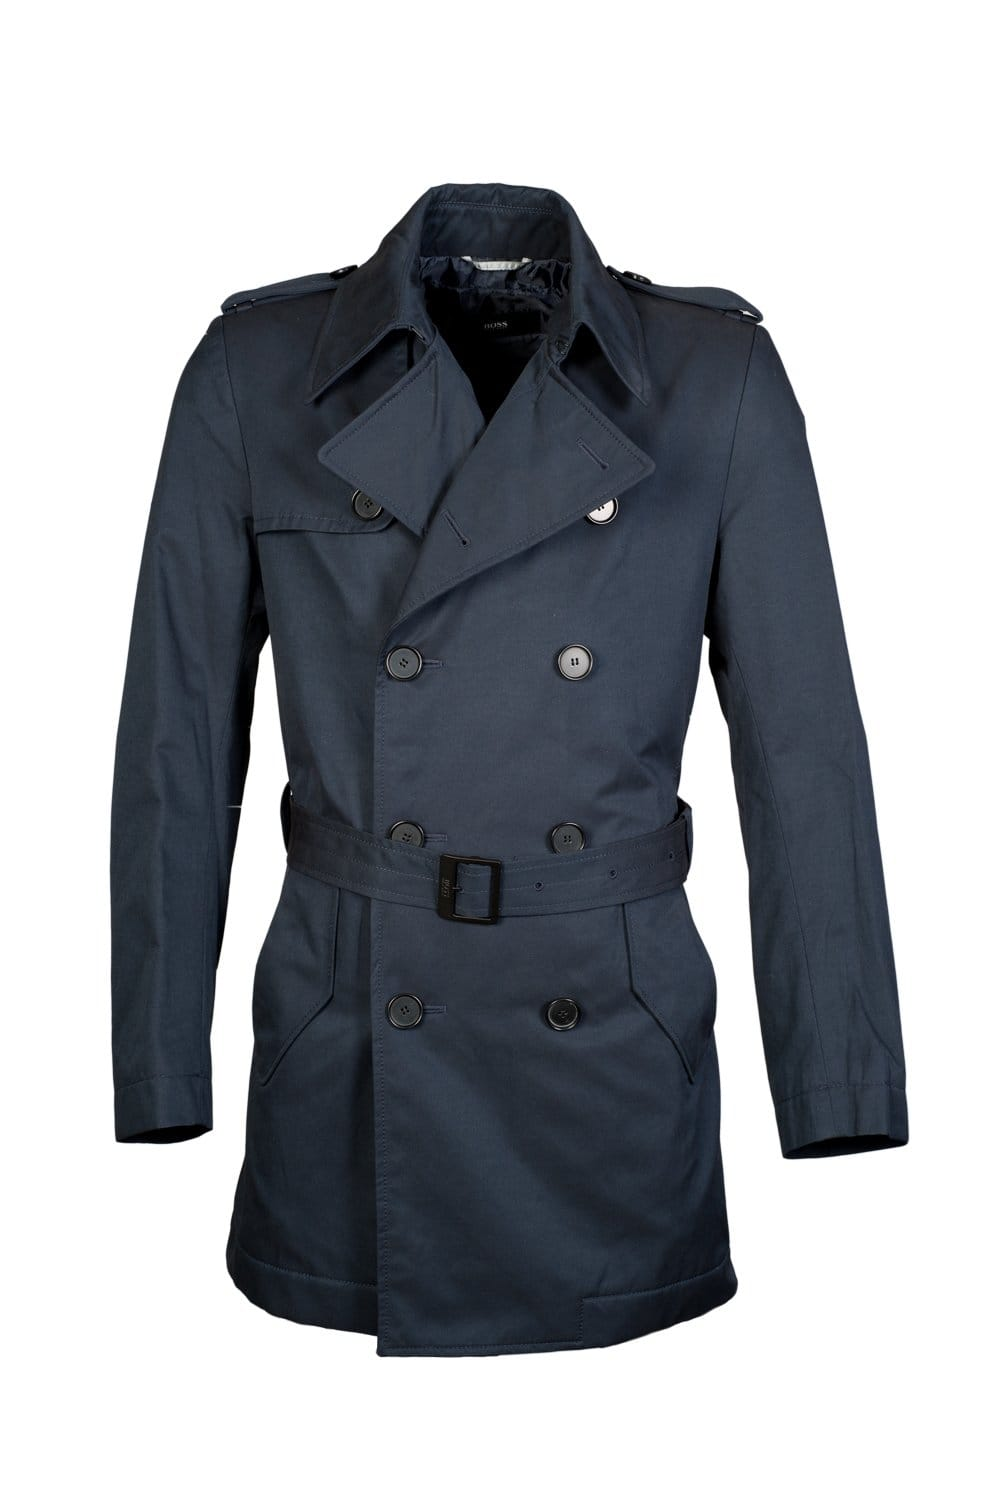 hugo boss black trench coat in navy blue double1 50247875. Black Bedroom Furniture Sets. Home Design Ideas